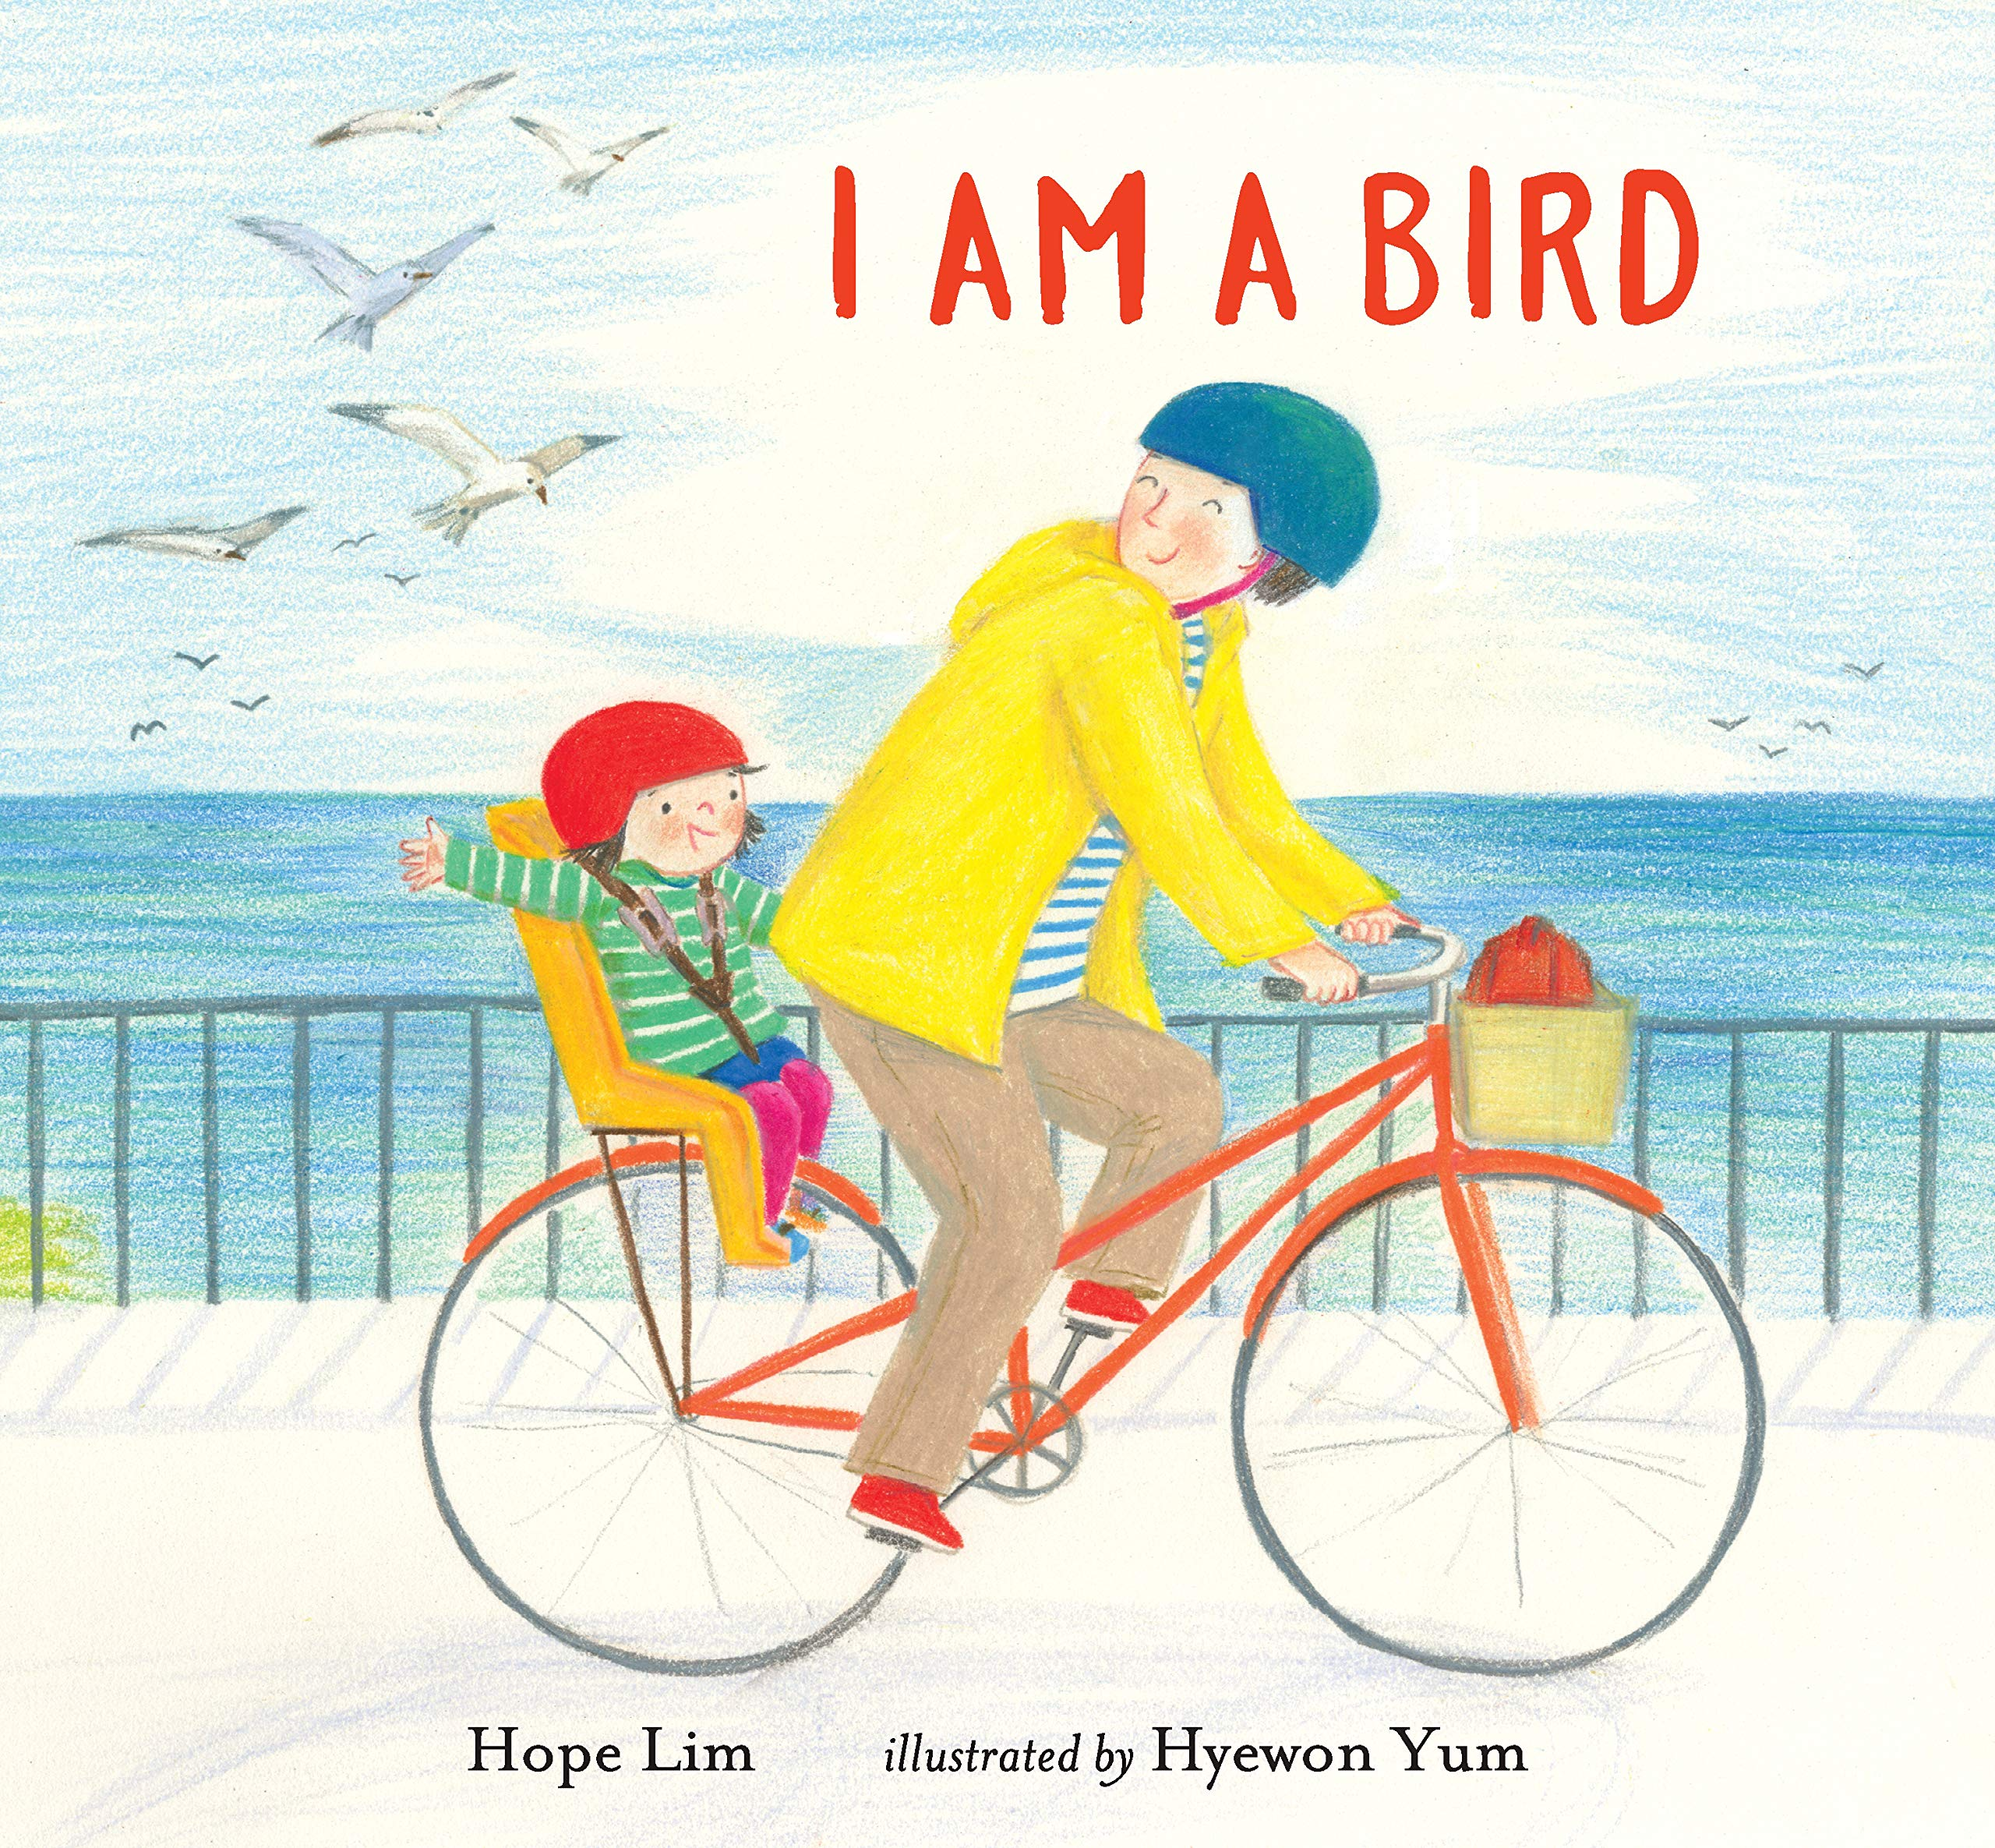 I am a Bird by Hope Lim